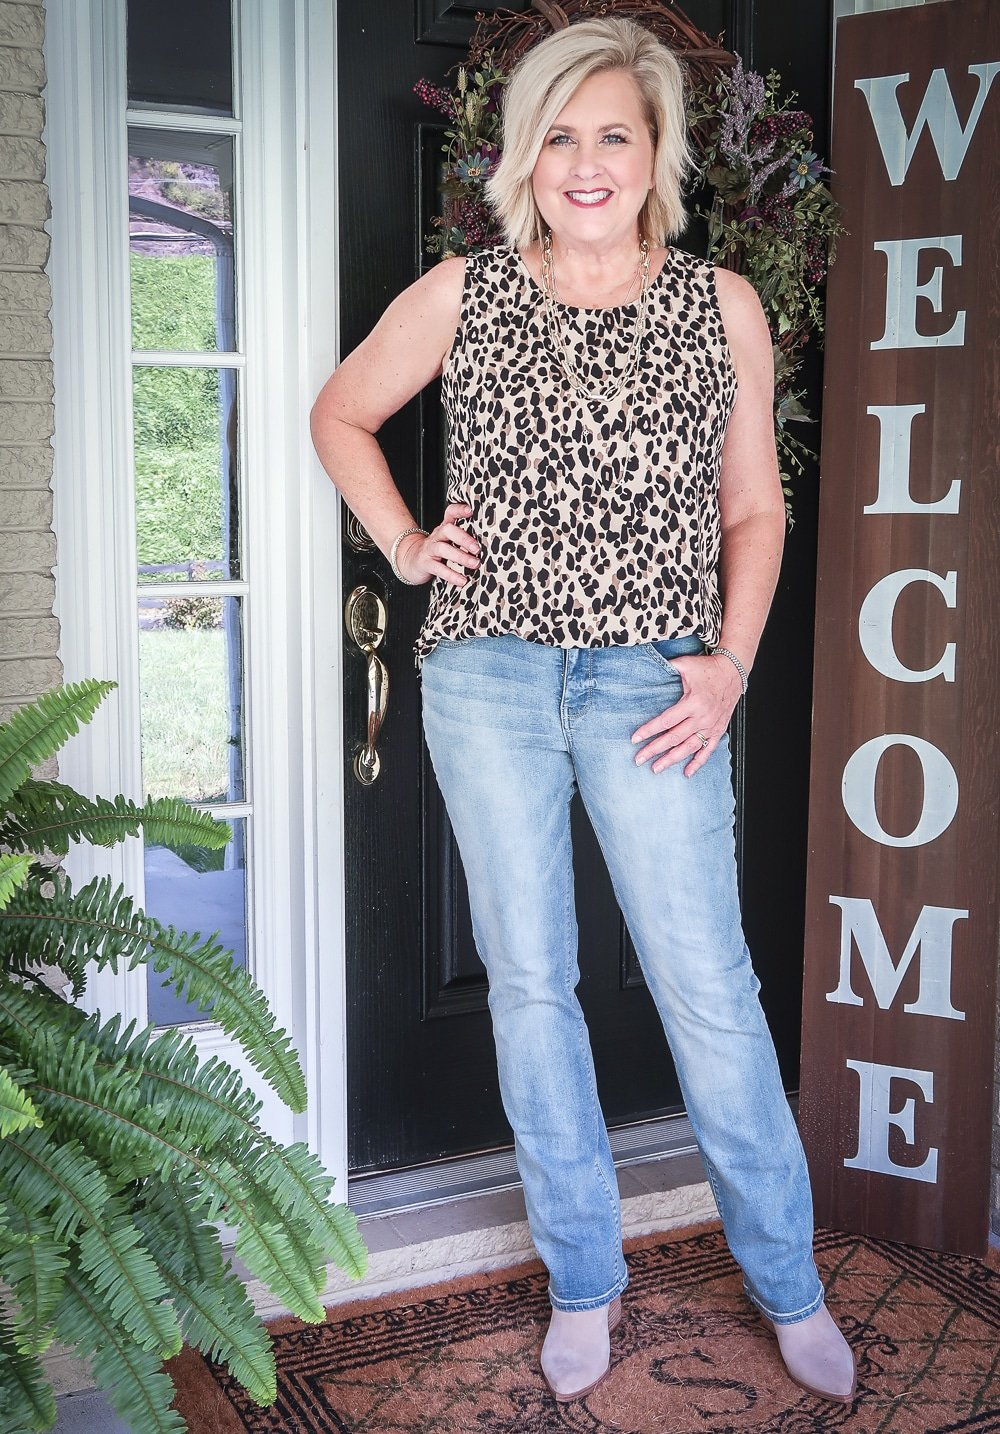 Fashion Blogger 50 Is Not Old is wearing a leopard print top that makes a statement and a pair of straight leg jeans by NYDJ